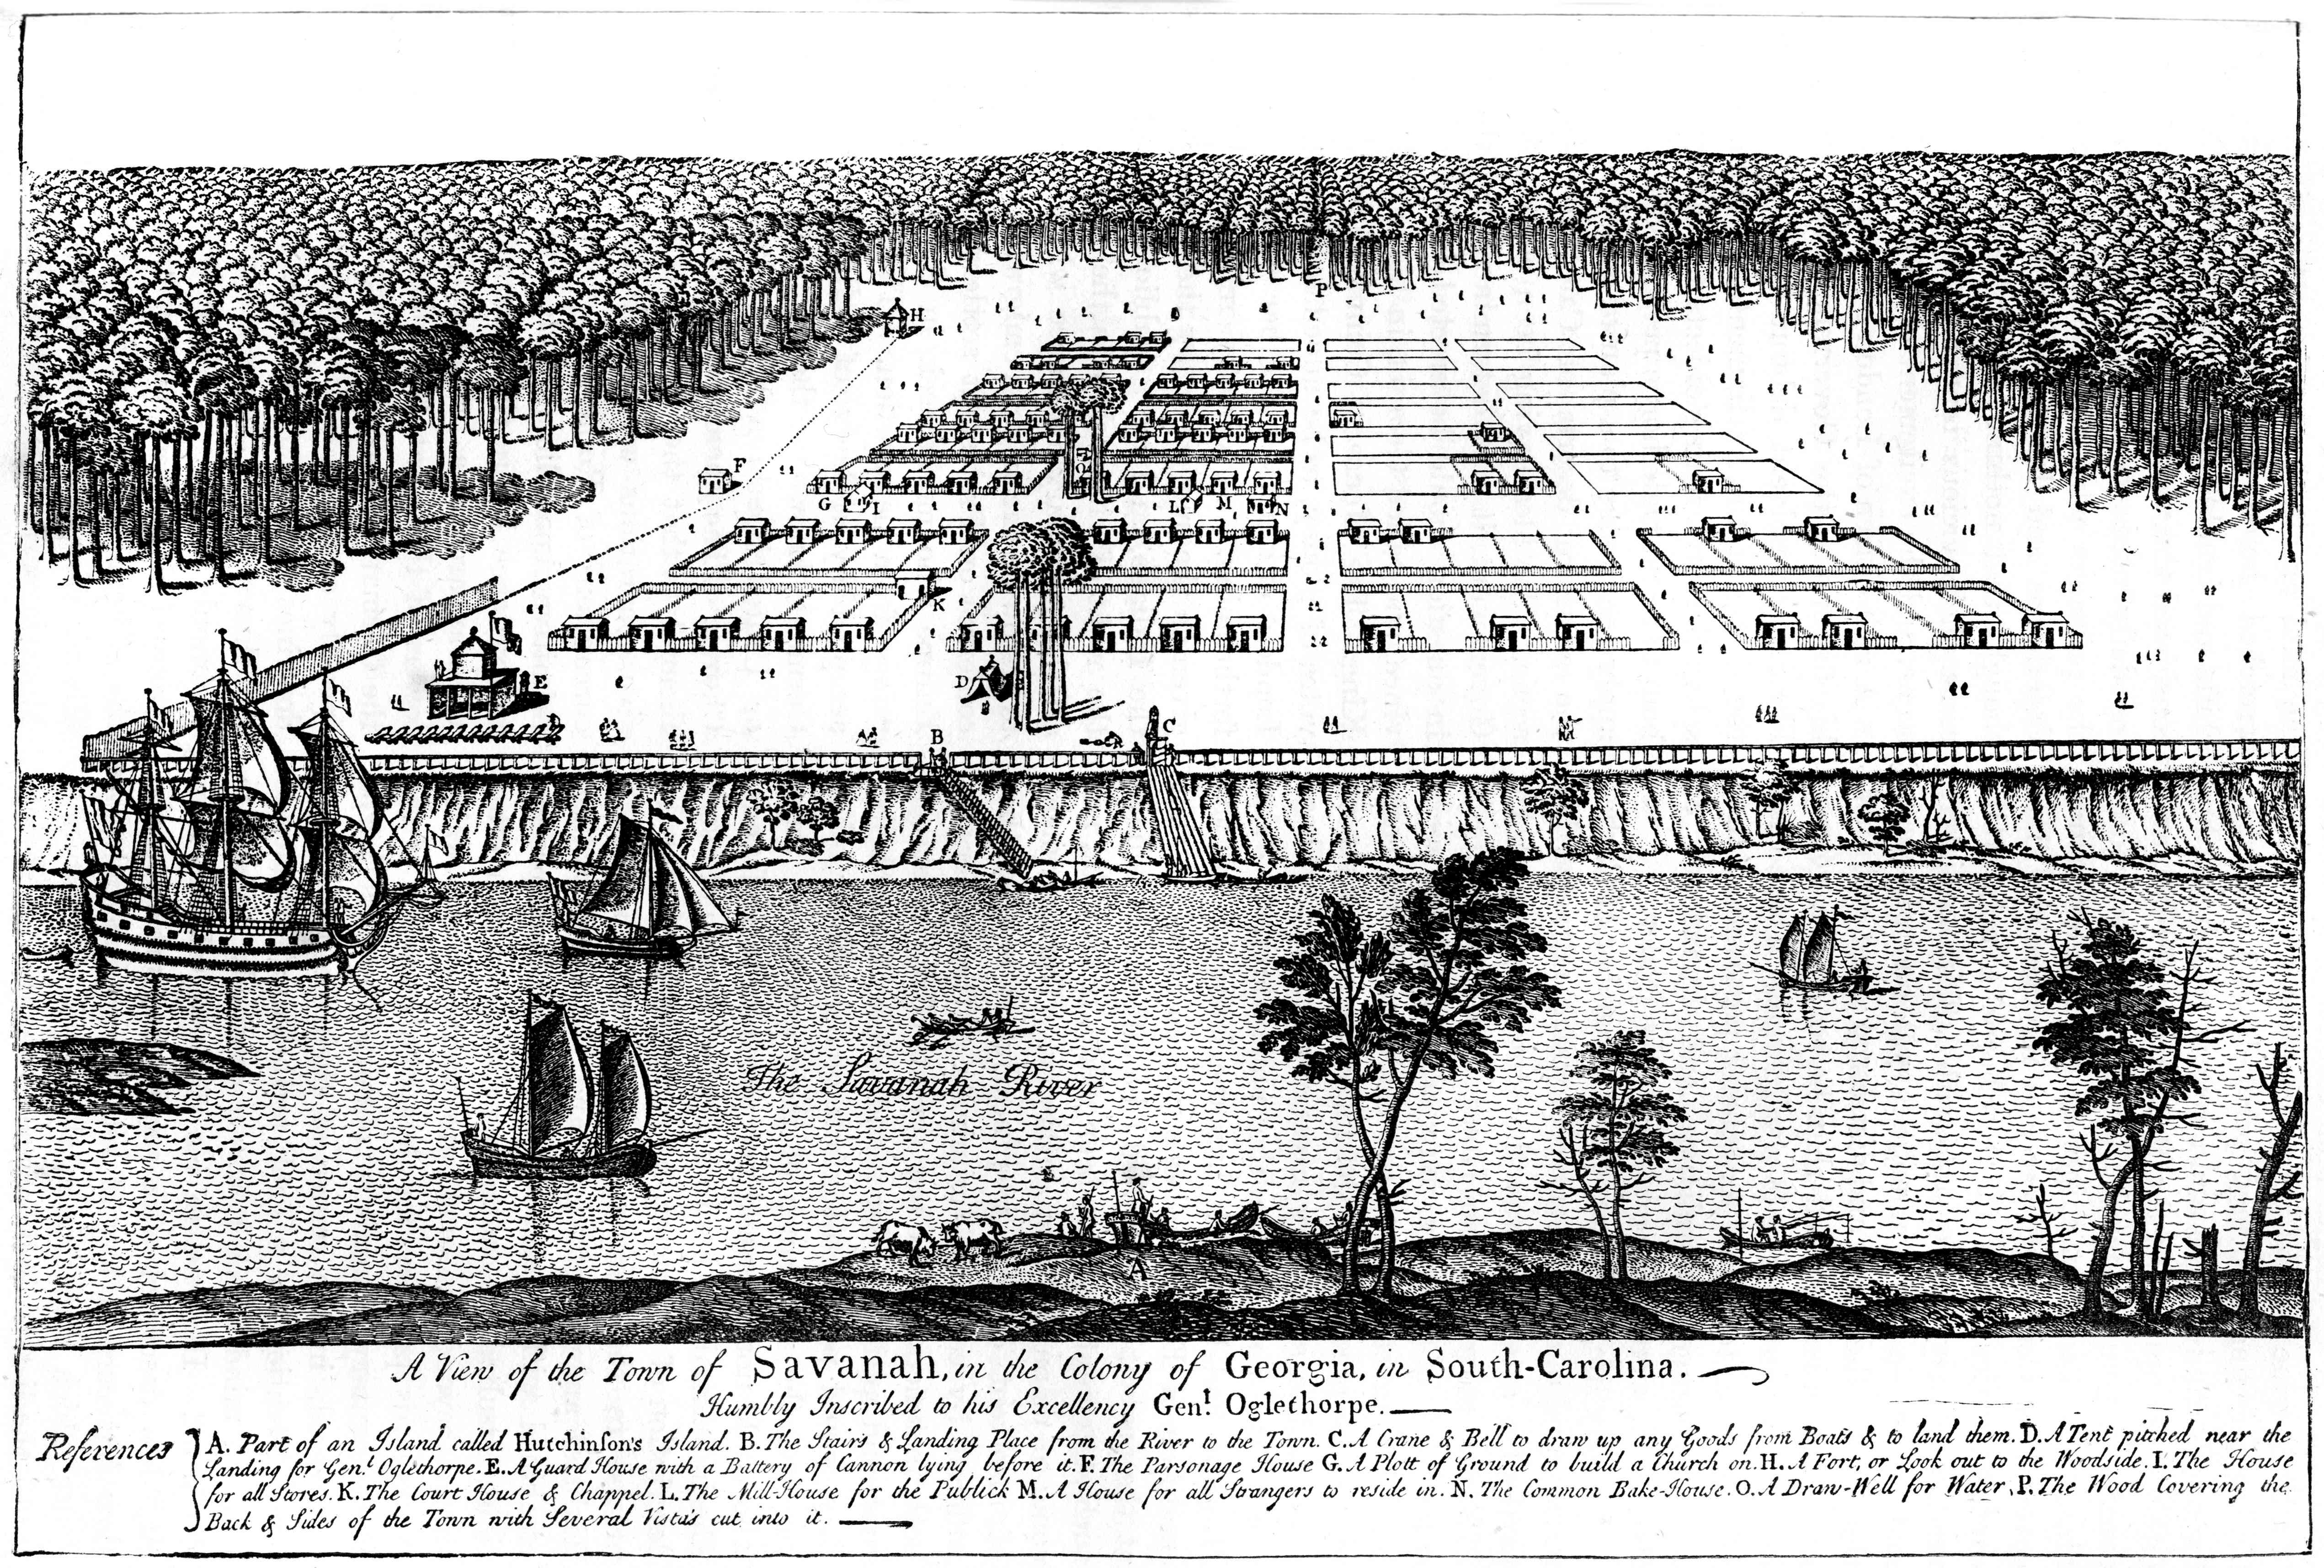 'A view of the town of Savanah, in the colony of Georgia, South Carolina', 1741, (c1880).